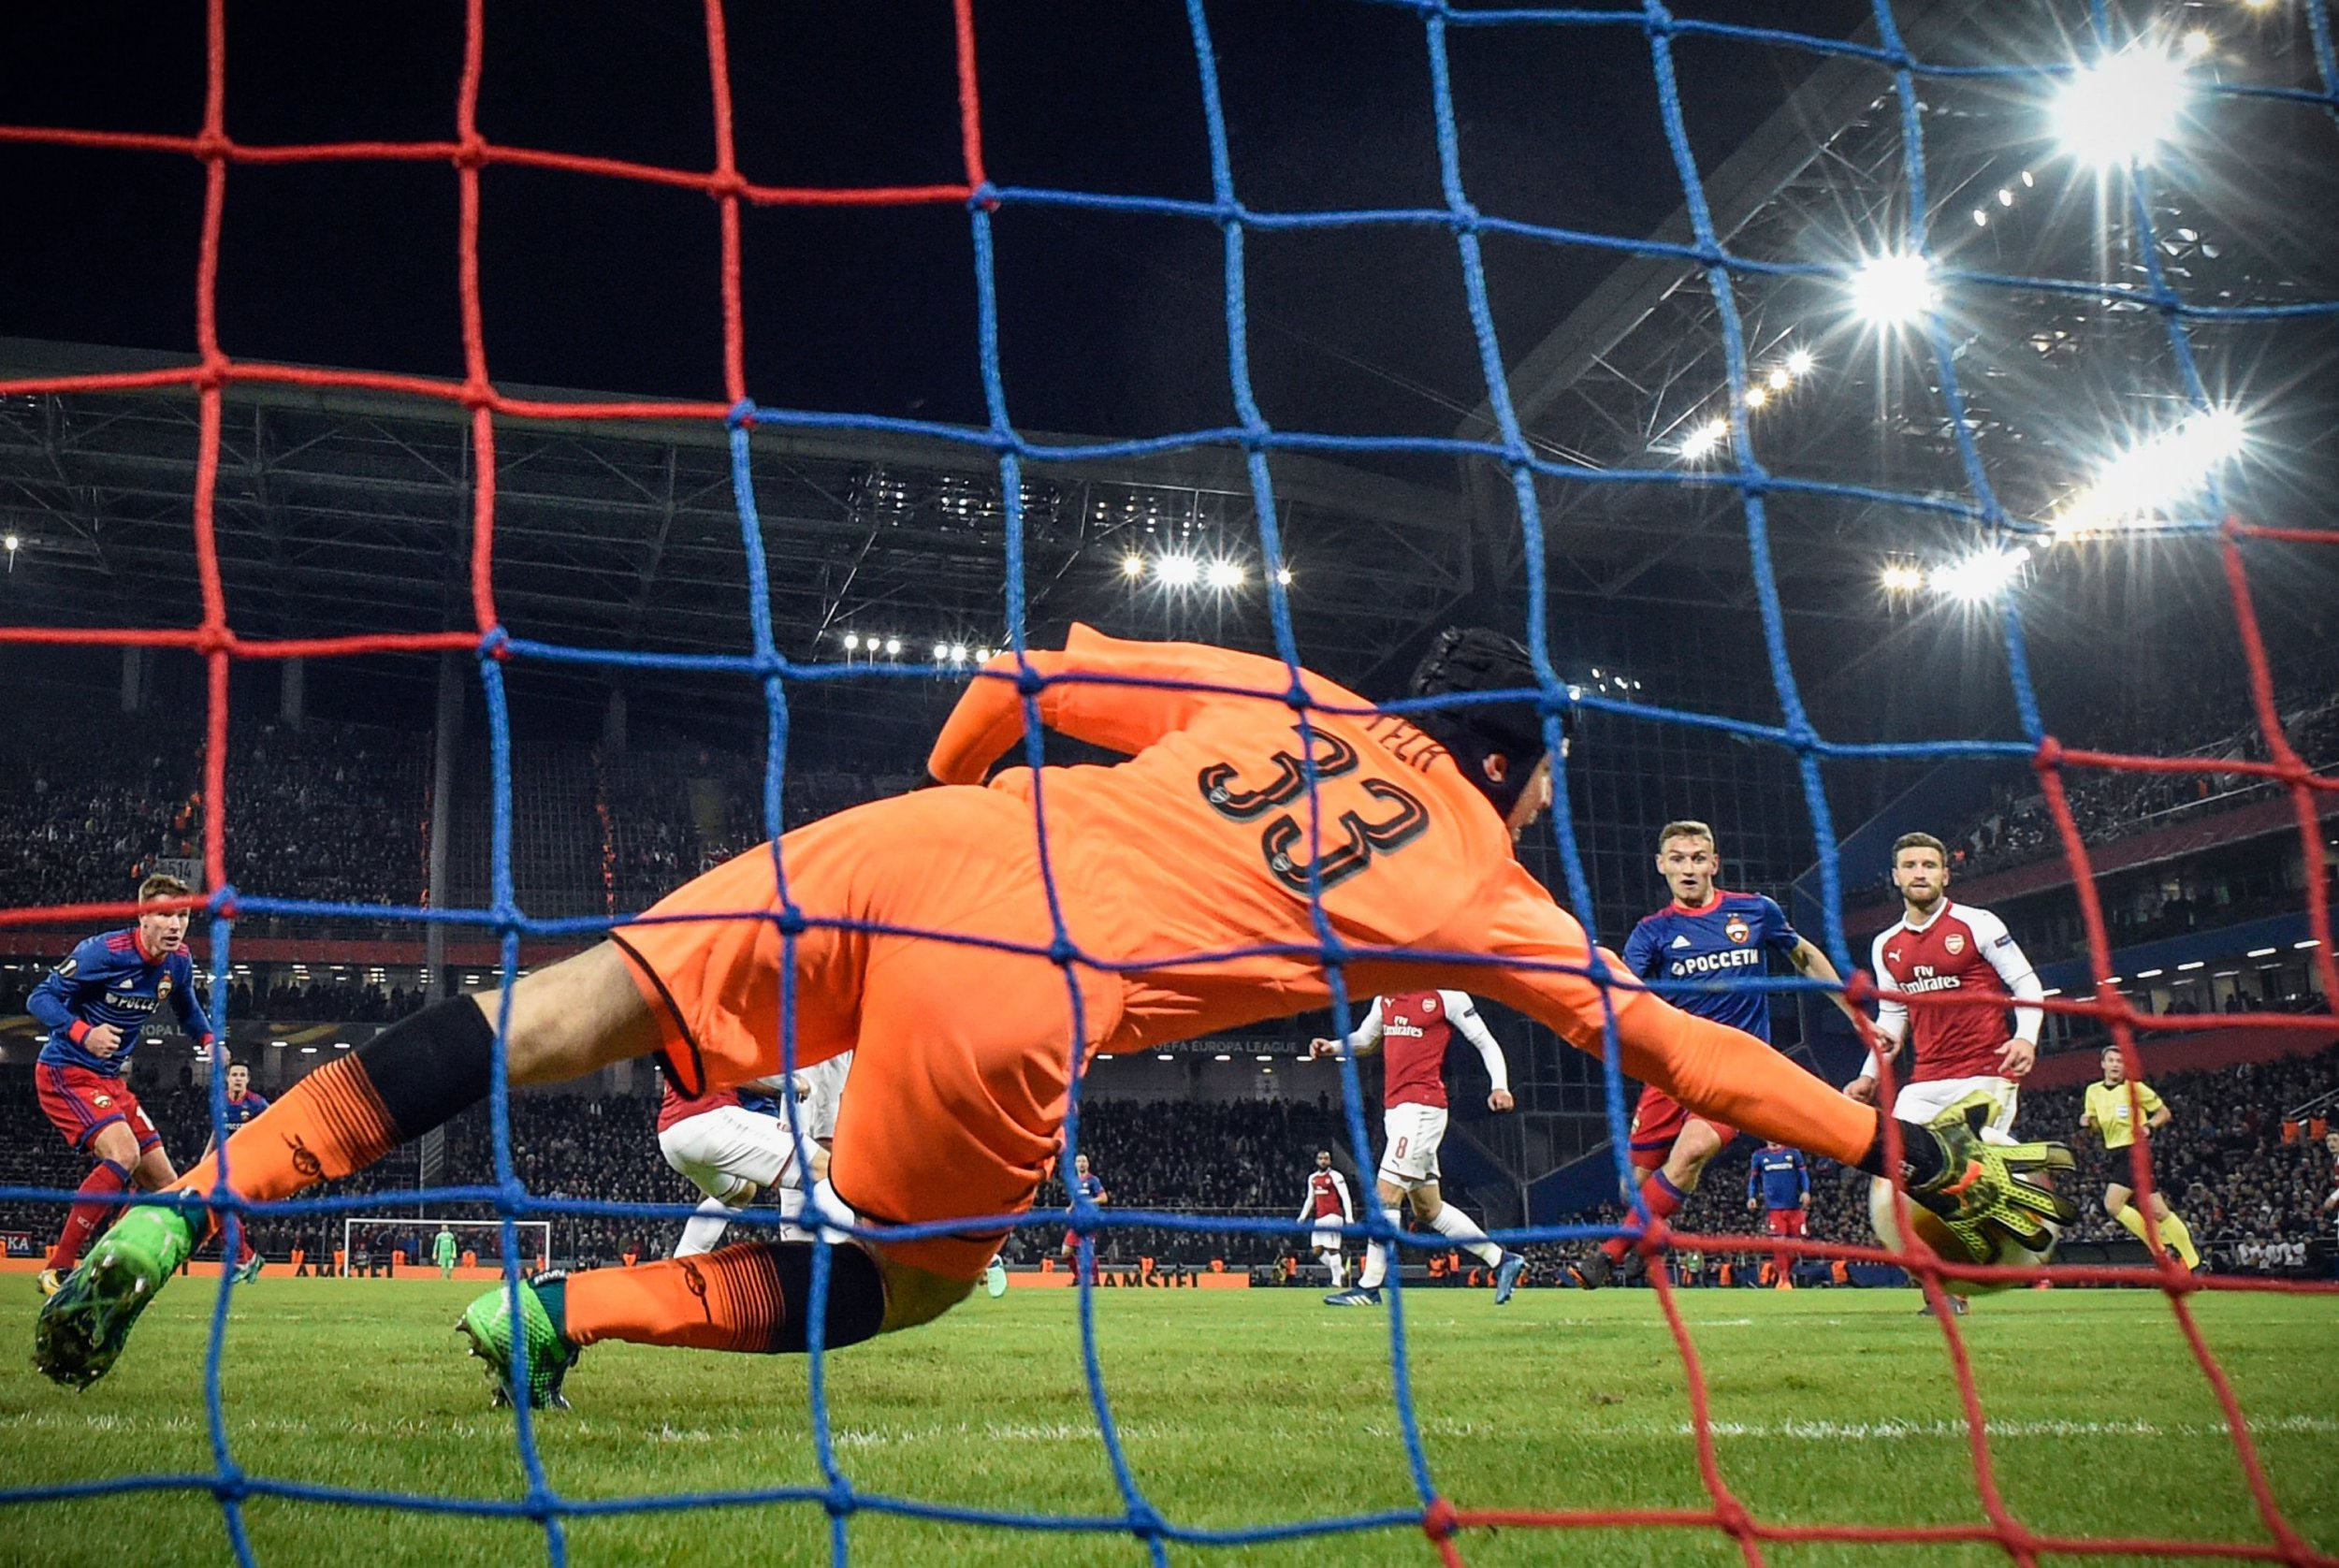 CSKA Moscow's Russian striker Fedor Chalov (2nd R) scores past Arsenal's Czech goalkeeper Petr Cech during the UEFA Europa League second leg quarter-final football match between CSKA Moscow and Arsenal at VEB Arena stadium in Moscow on April 12, 2018. / AFP PHOTO / Alexander NEMENOVALEXANDER NEMENOV/AFP/Getty Images